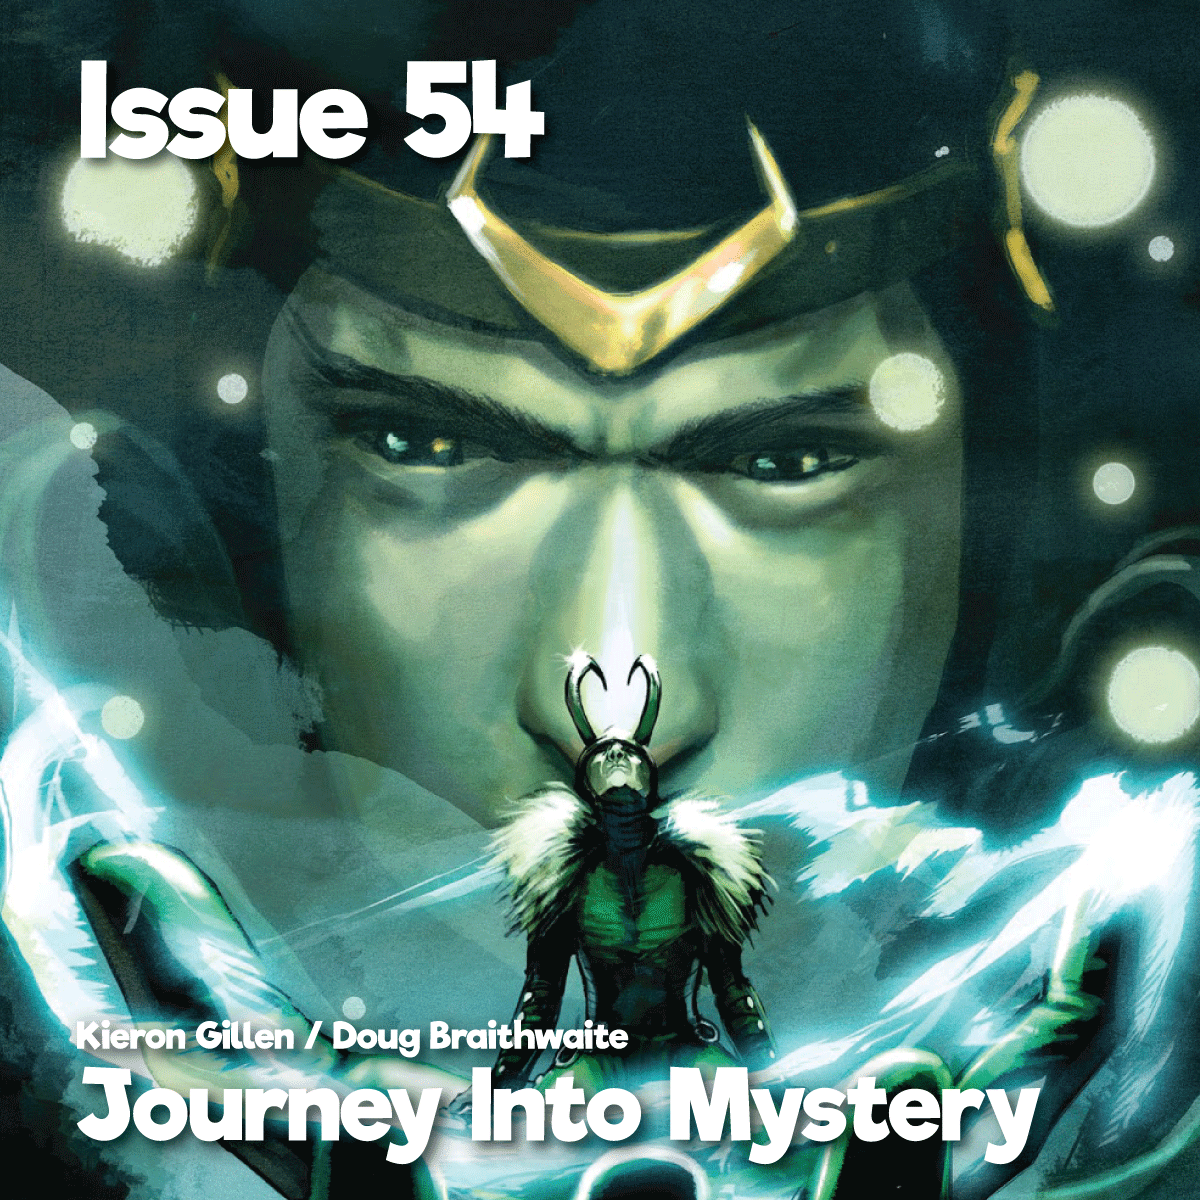 Issue54_JourneyintoMystery_1200x1200.png